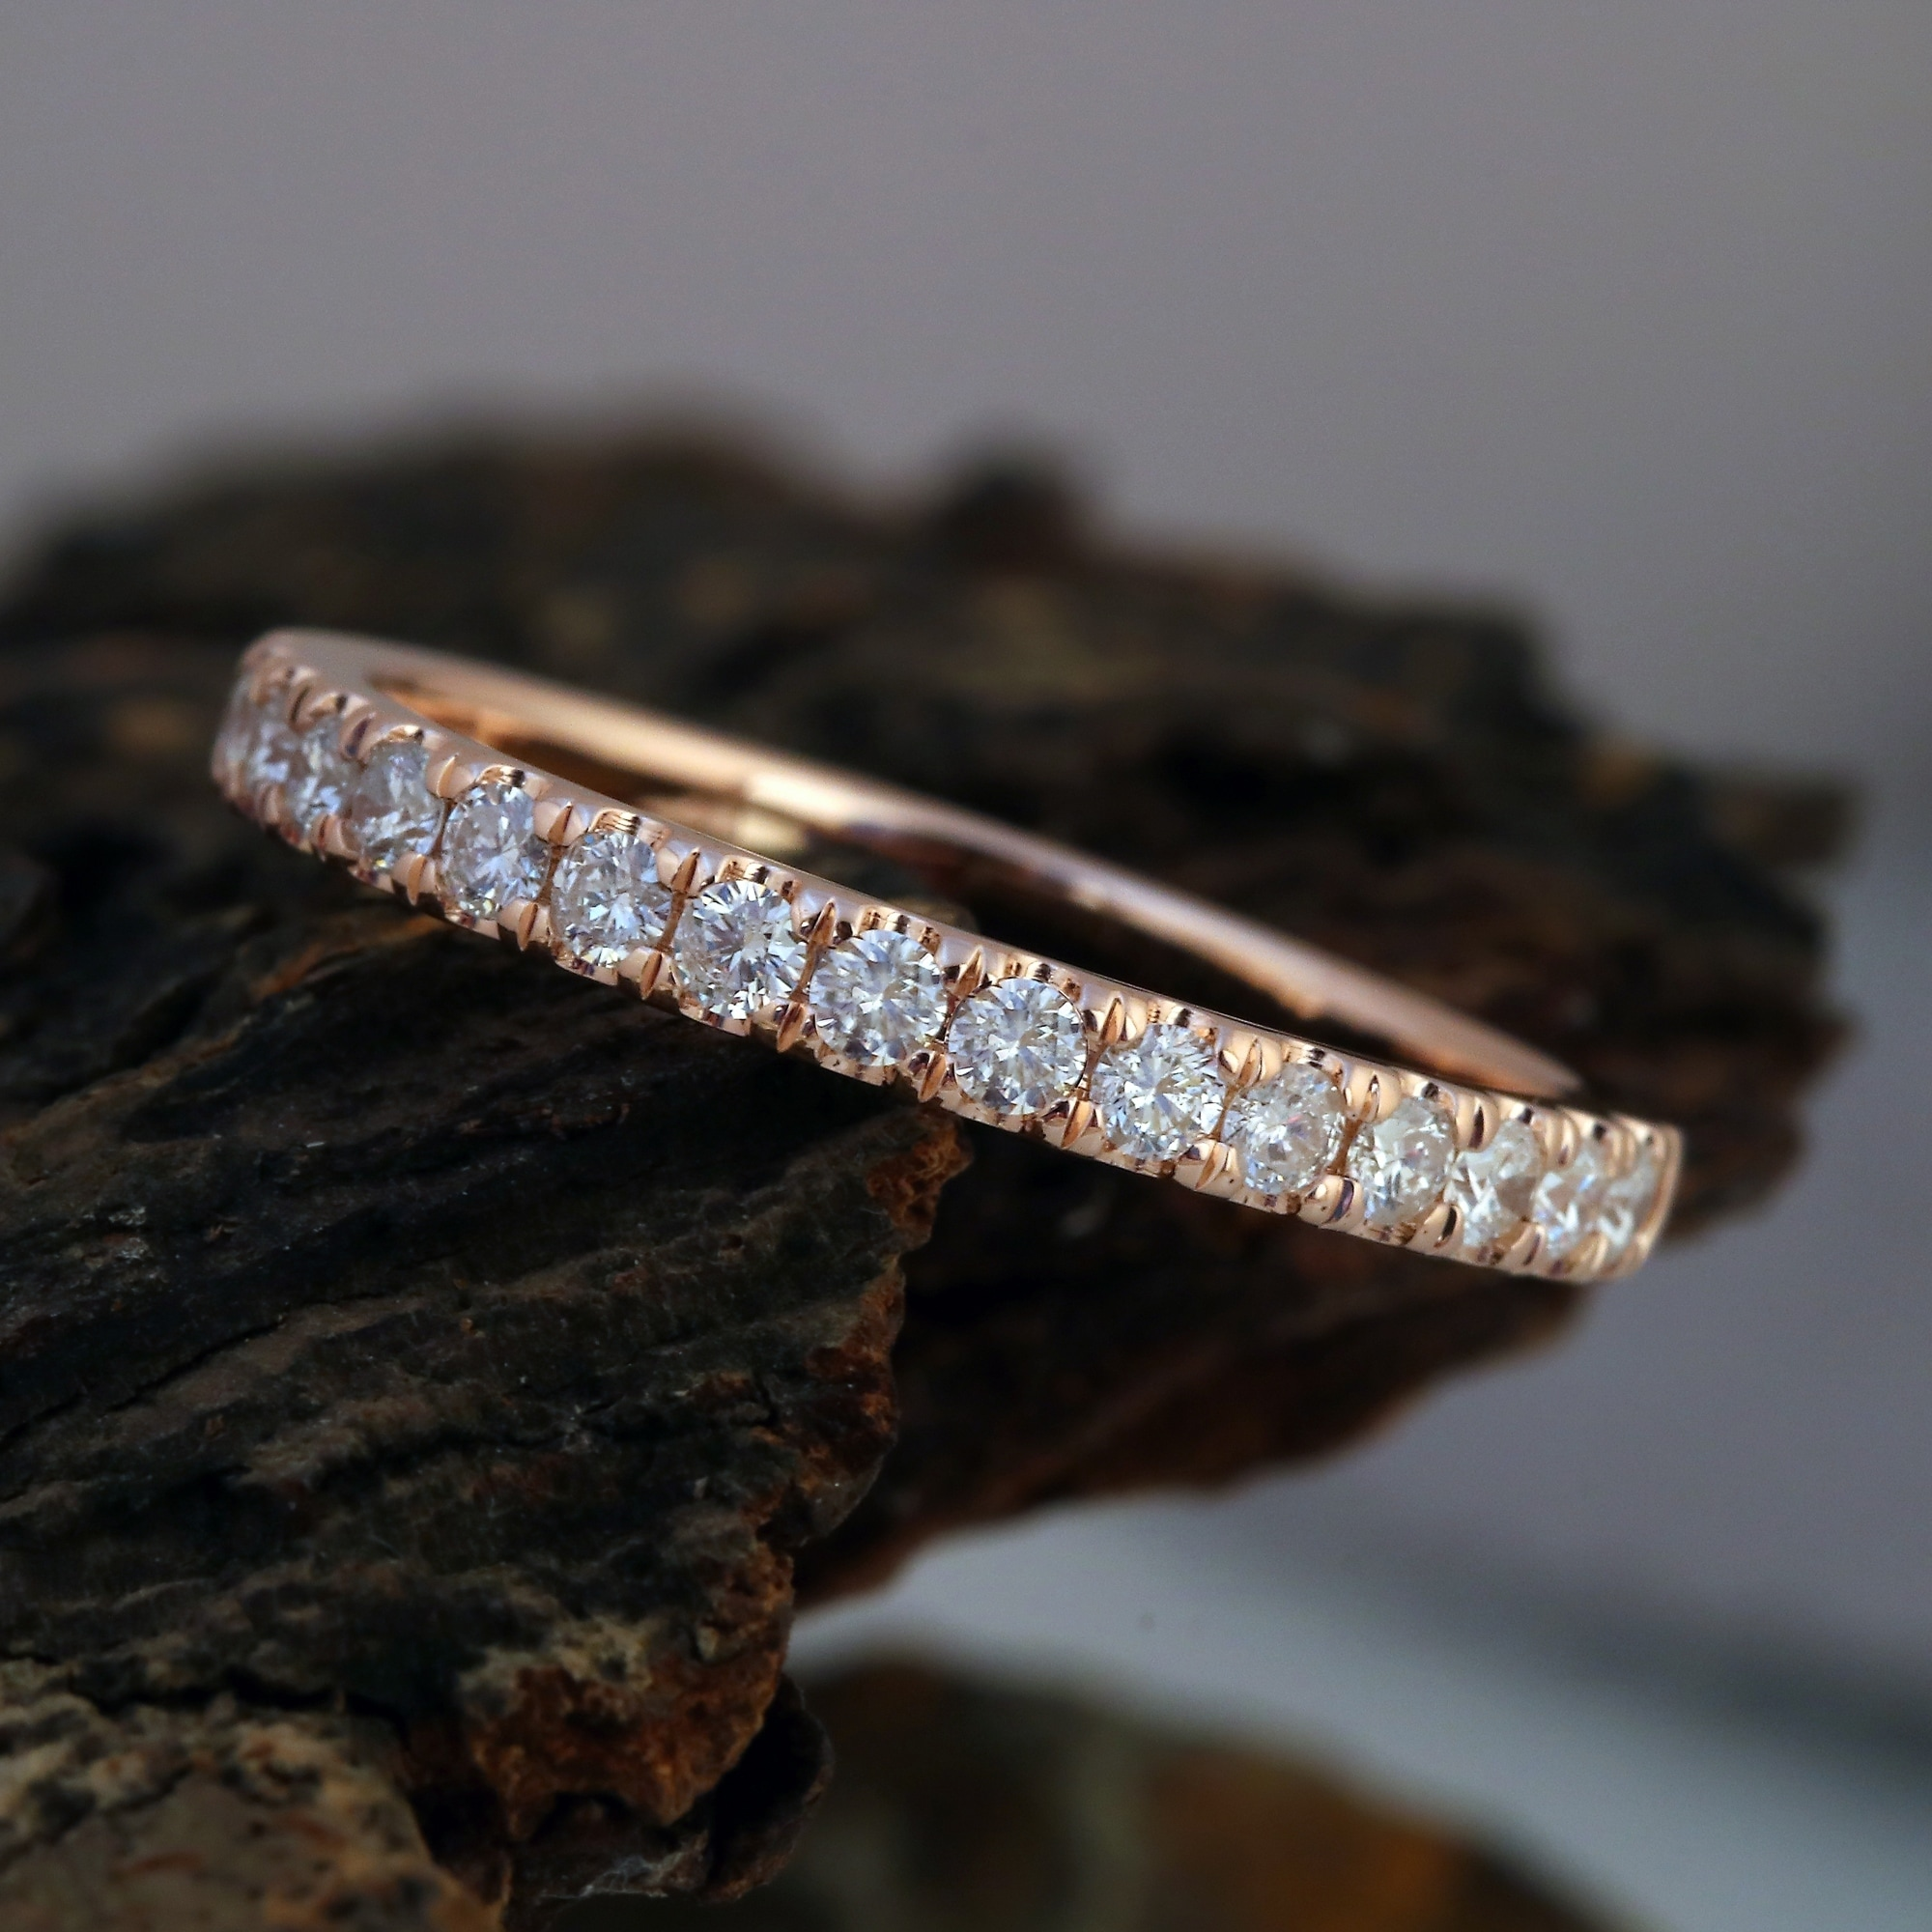 G-H,I2-I3 Diamond Wedding Band in 10K Pink Gold Size-9.75 1//10 cttw,